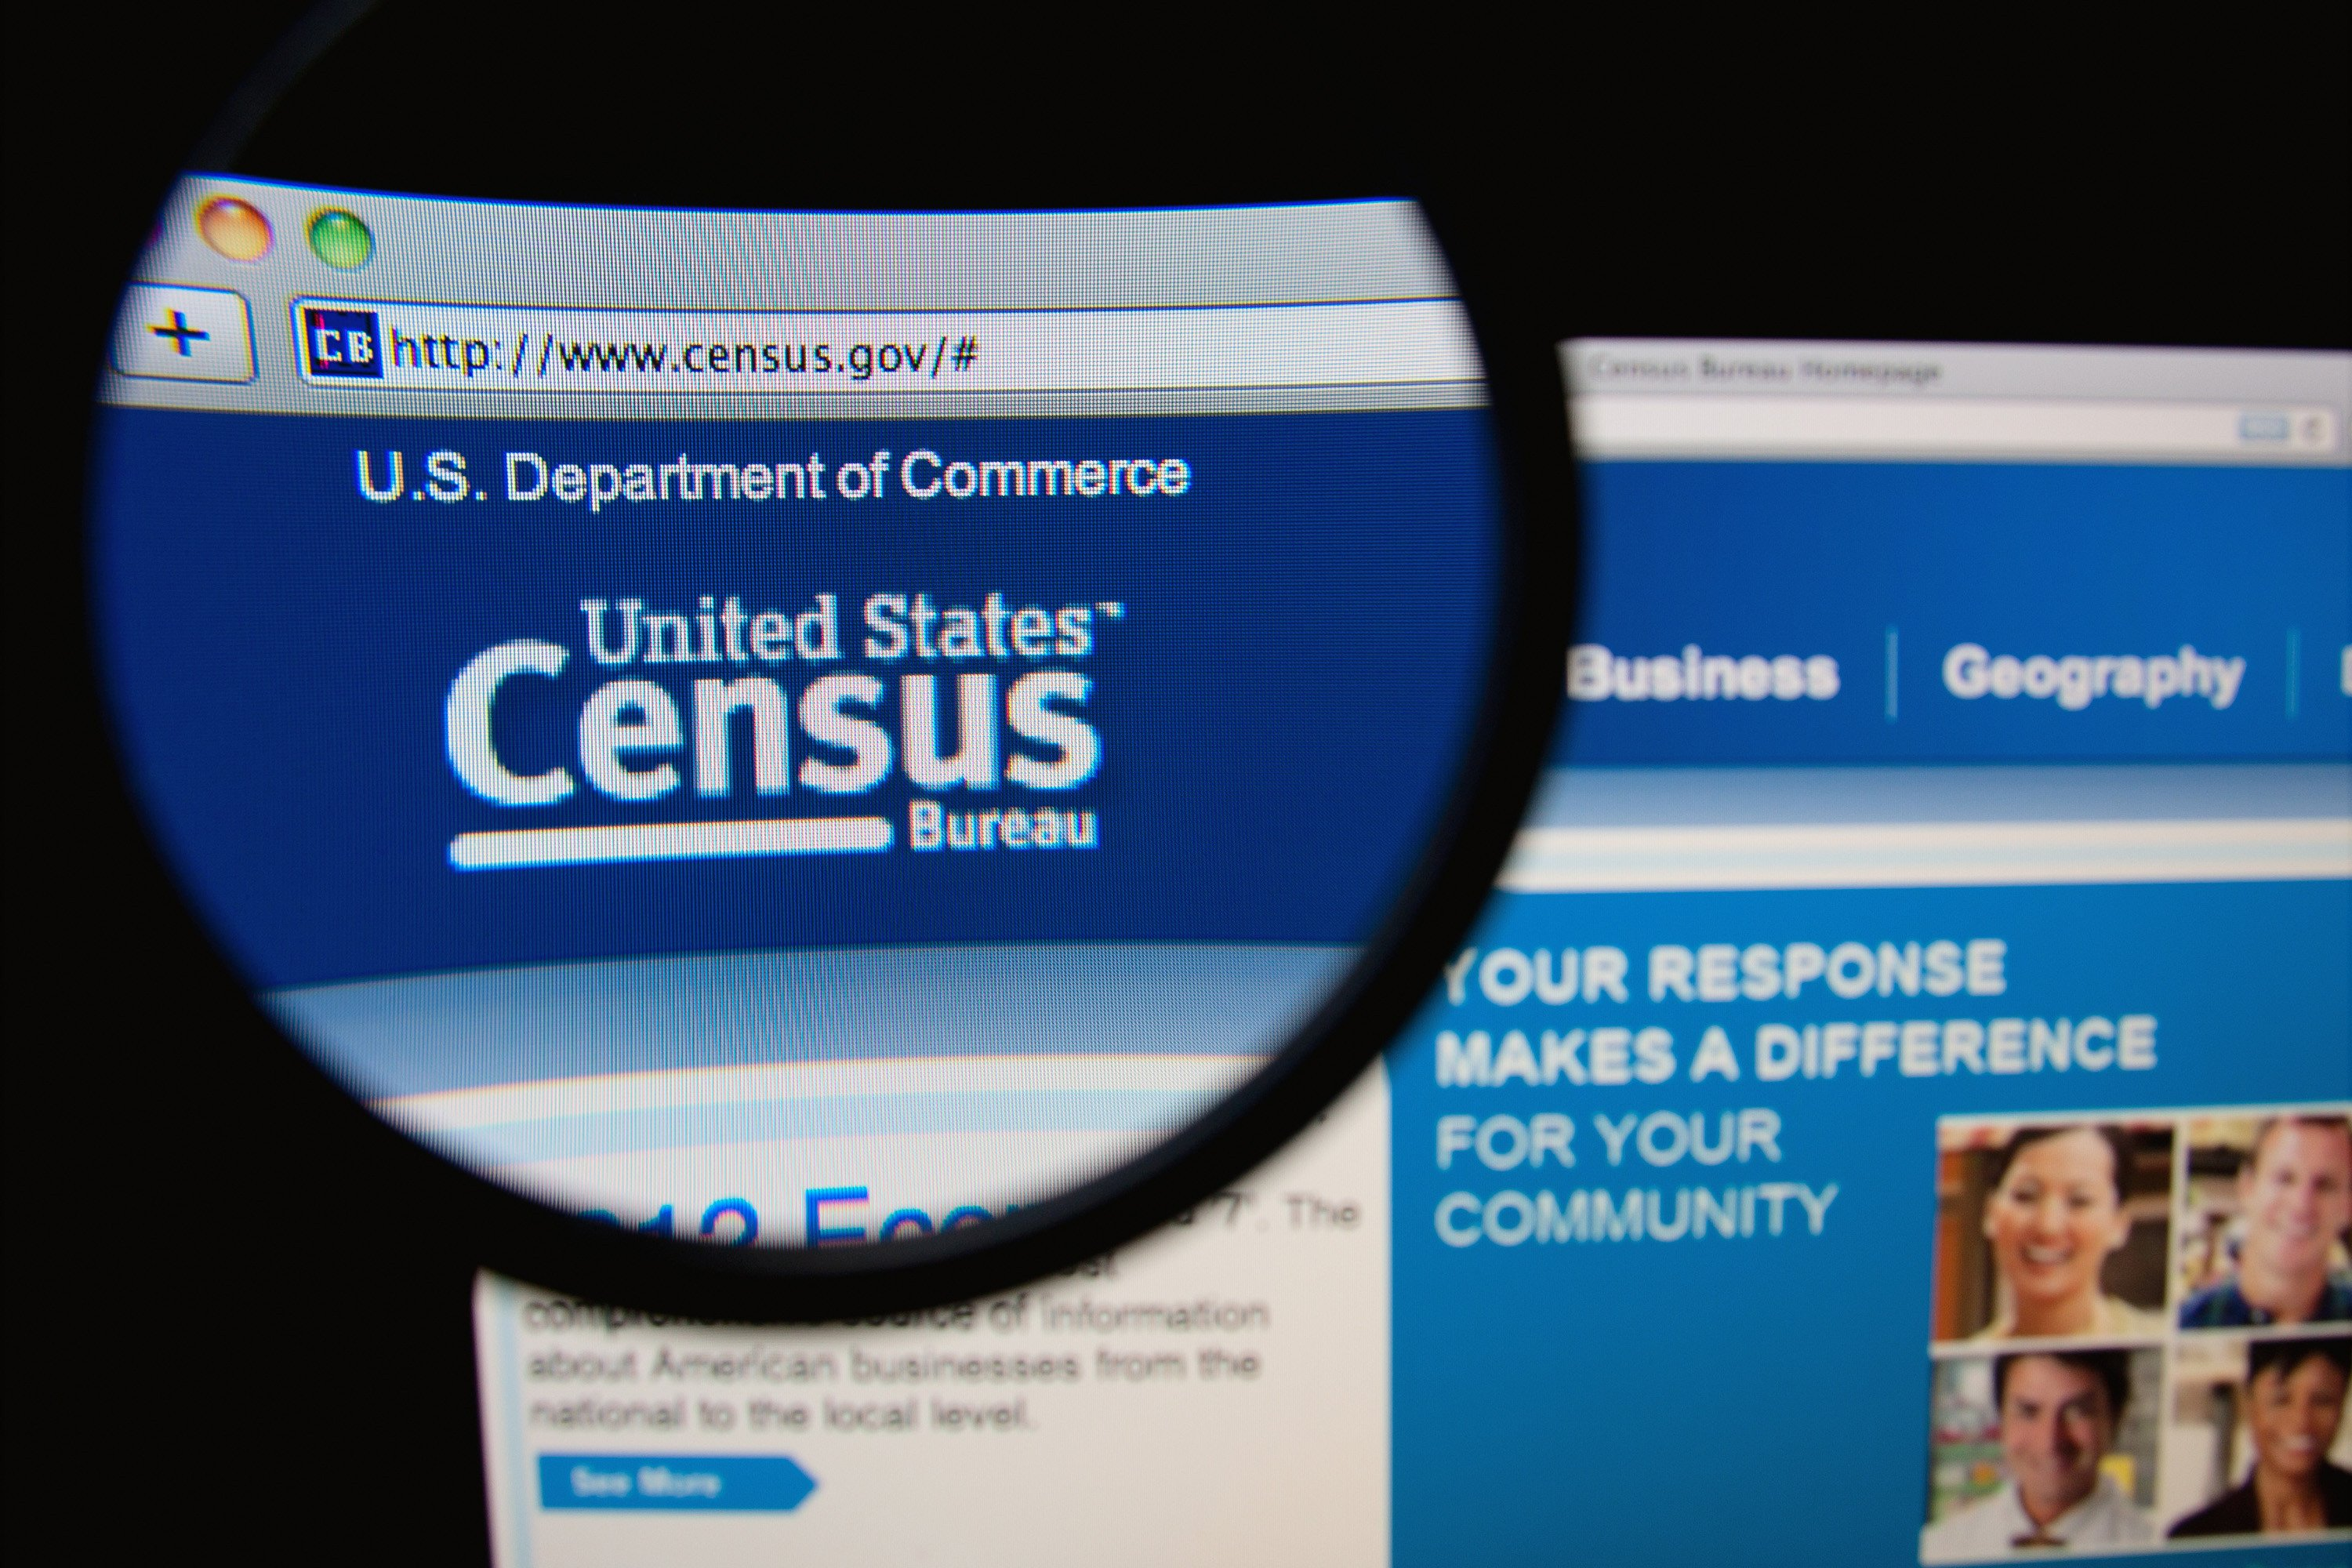 Whistleblower gets run-around for catching fraud at Census Bureau